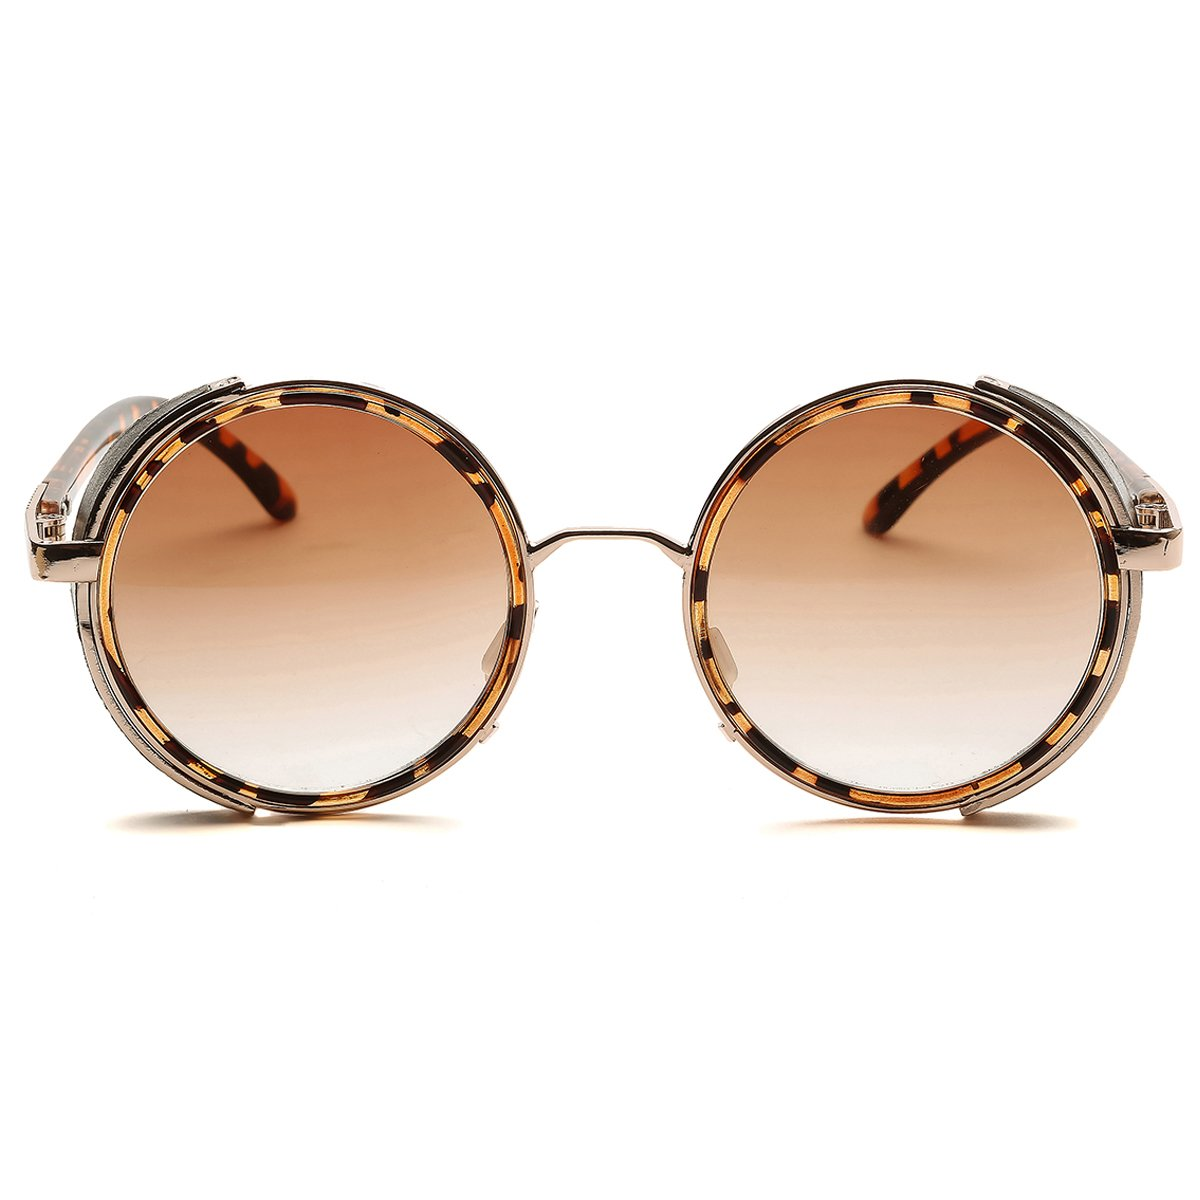 46a8c2d4ae3 Dollger Steampunk Vintage Retro Sunglasses Metal Circle Frame(Brown Lens+Brown  Frame)  Amazon.co.uk  Clothing